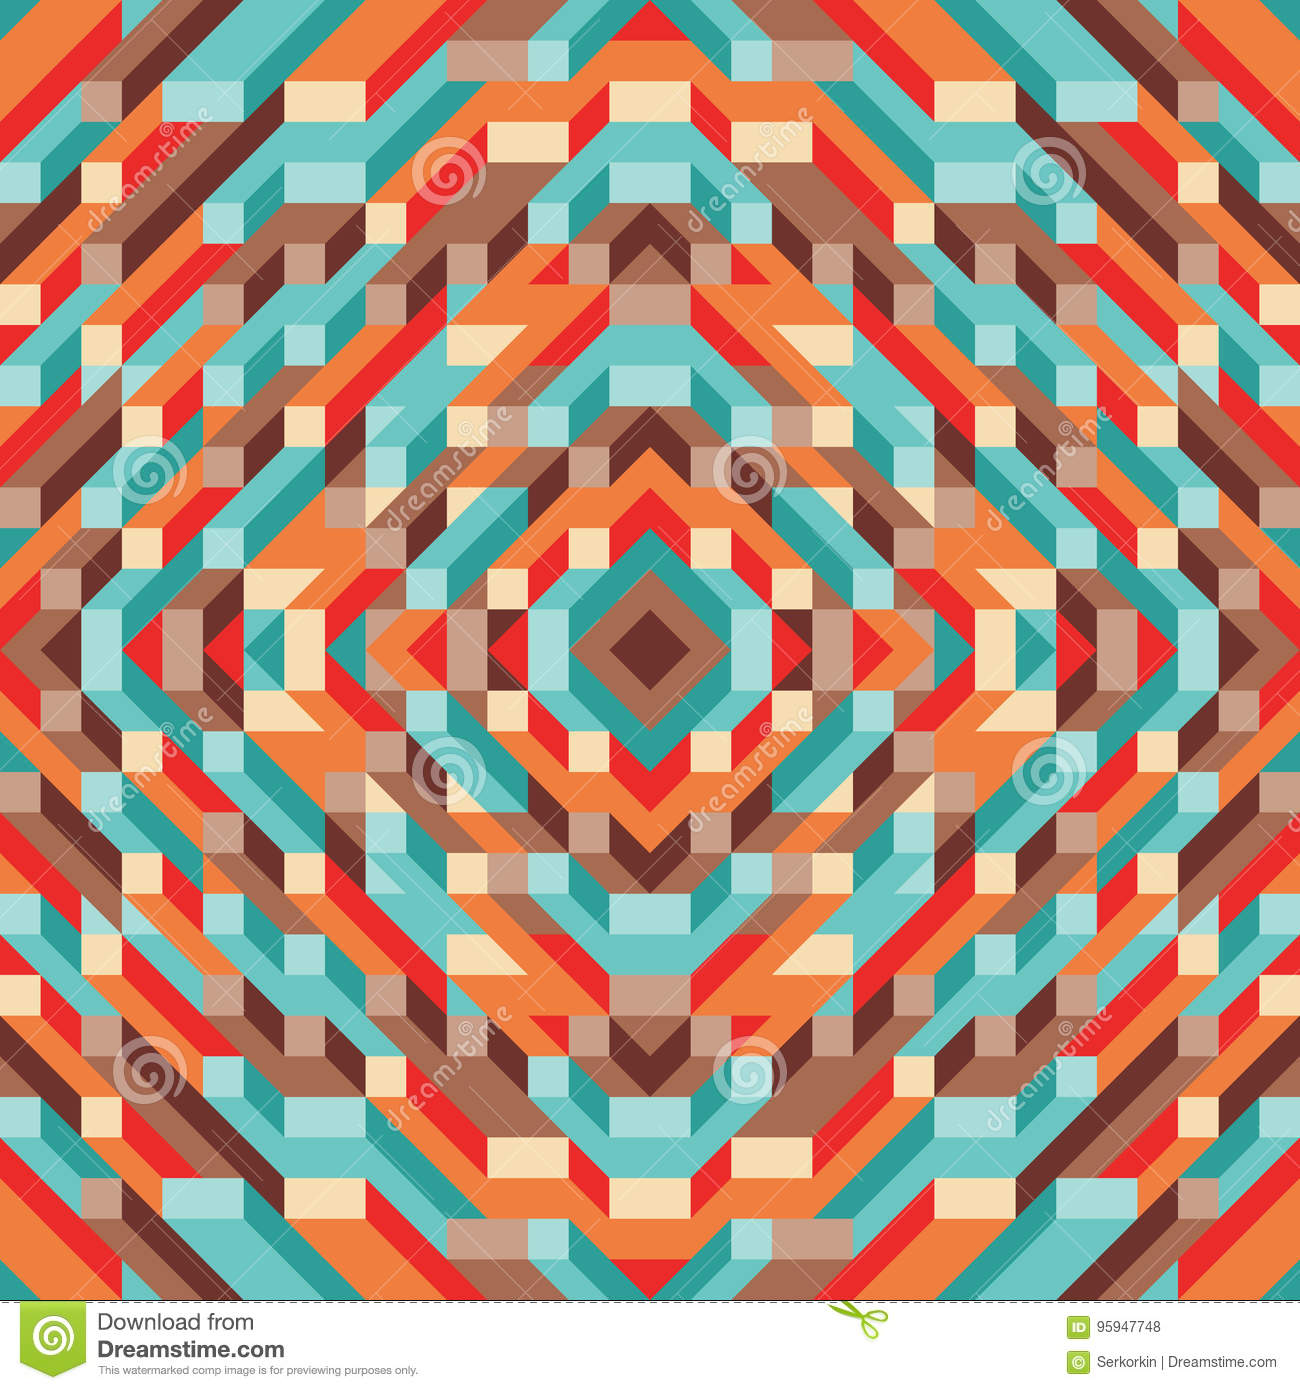 Abstract geometric vector background for presentation, booklet, website and other design project. Mosaic colored pattern with 3D.